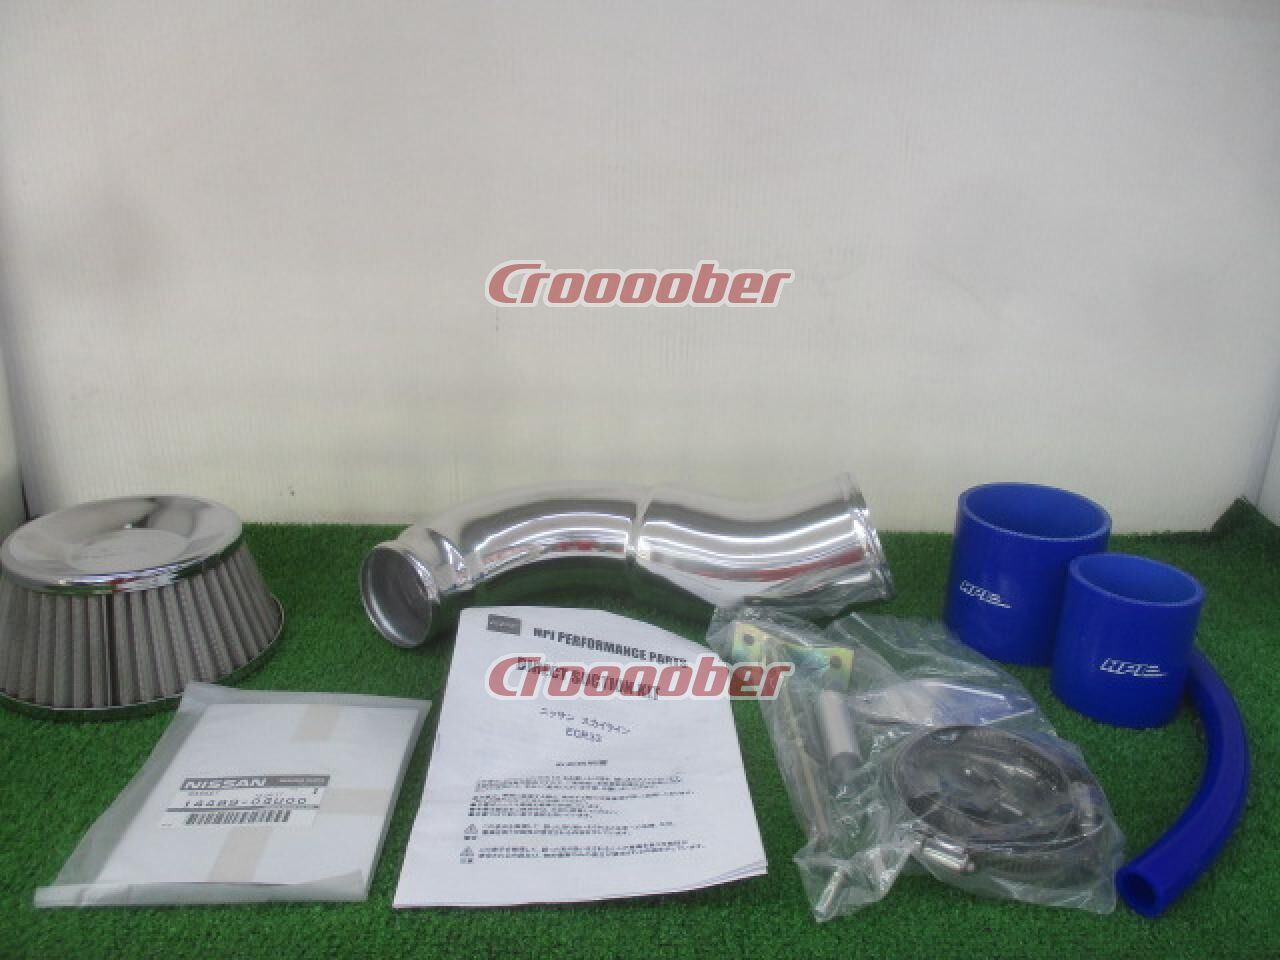 Hpi Direct Suction Kit Air Filters Croooober